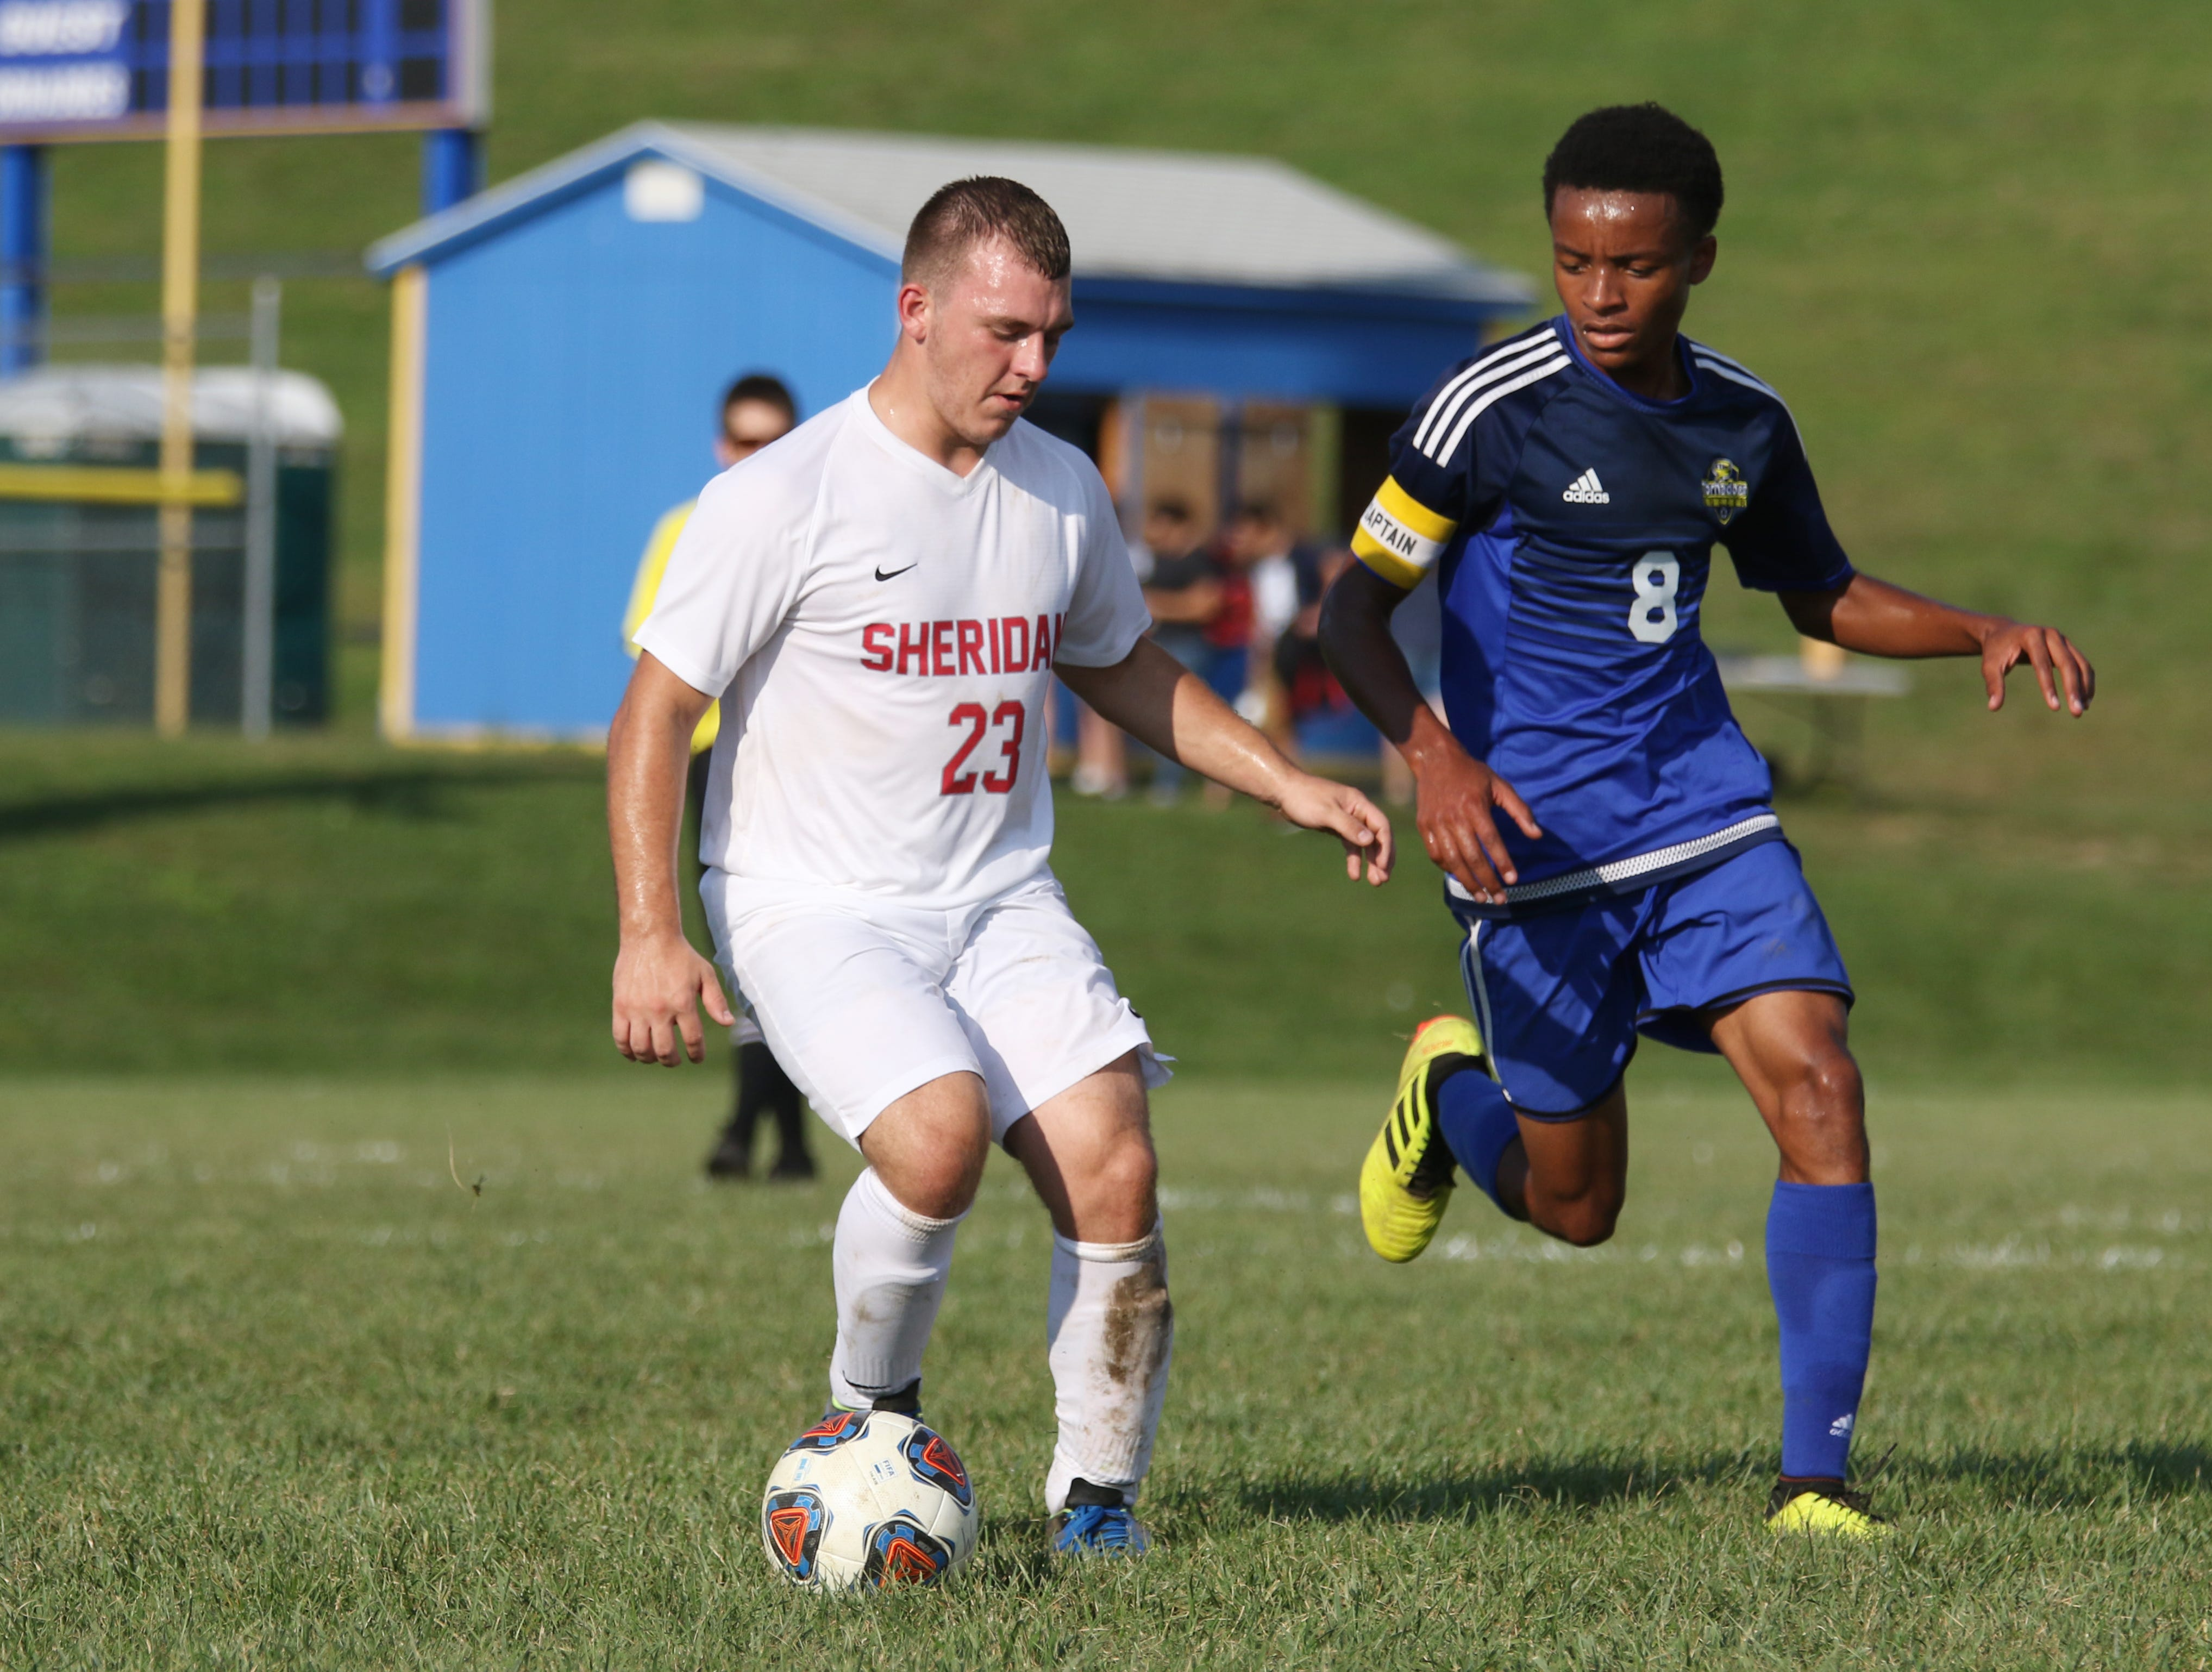 Sheridan's JJ Hackworth moves with the ball against West Muskingum.